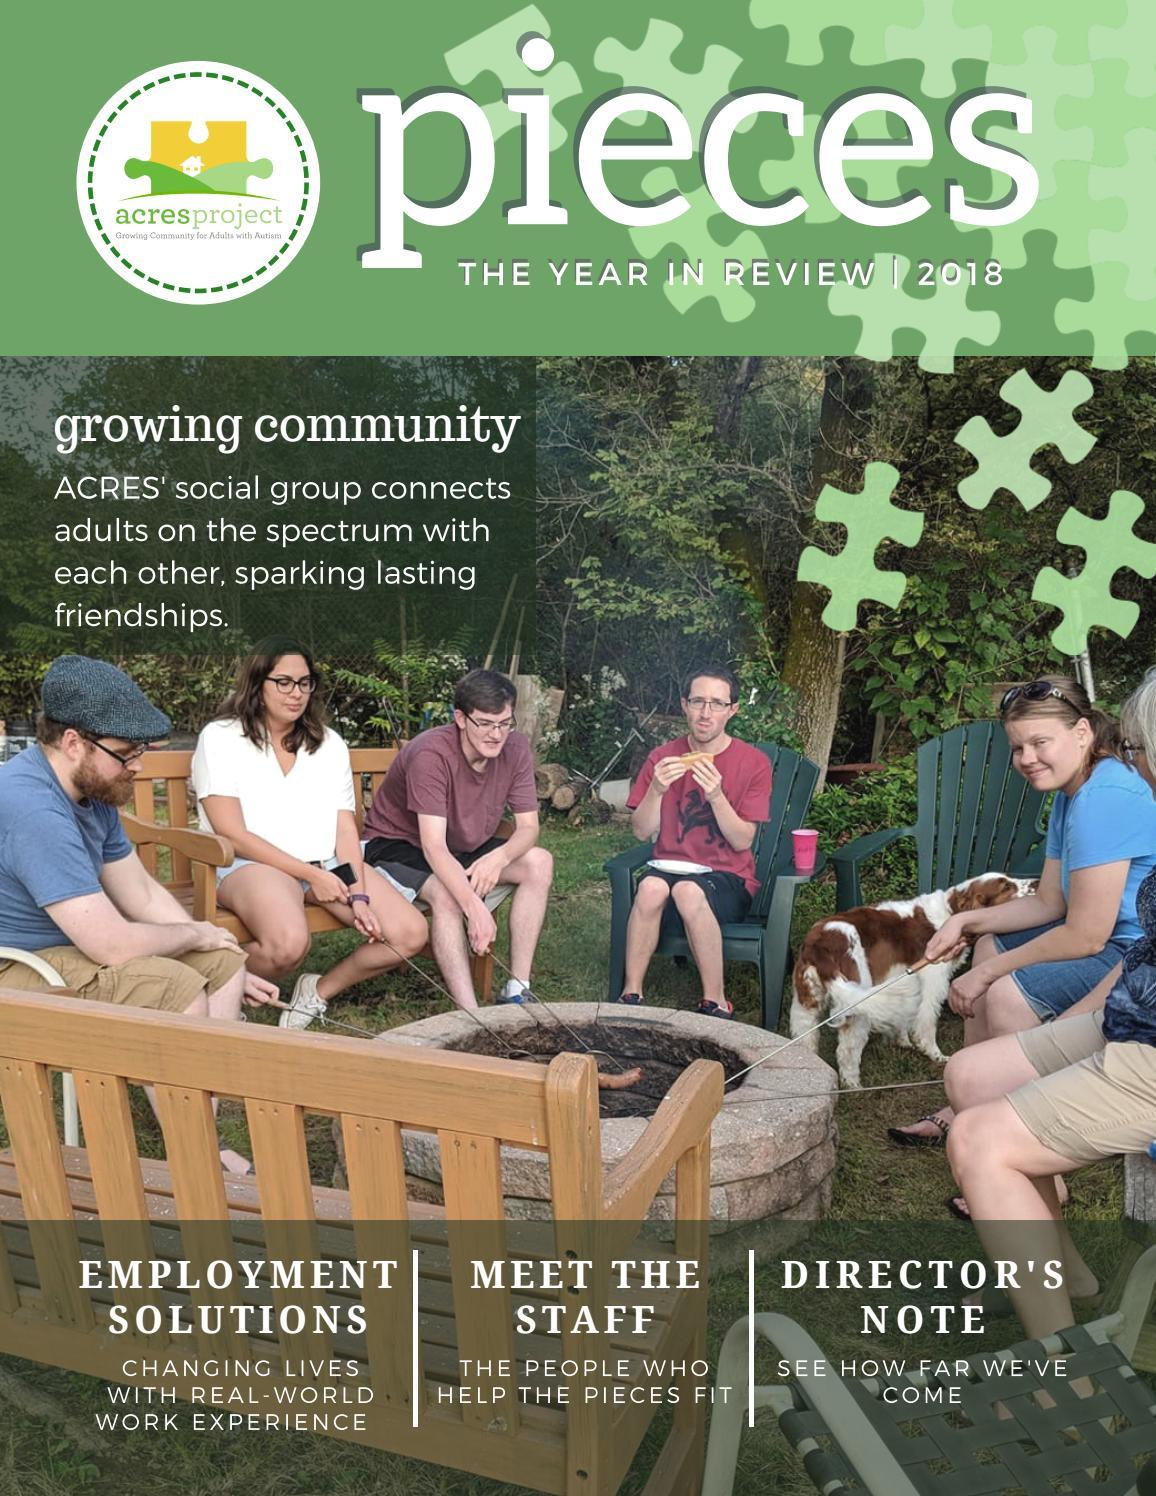 2018 has been a great year for The ACRES Project! Flip through our first ever issue of Pieces, our digital magazine, to see what we've accomplished to